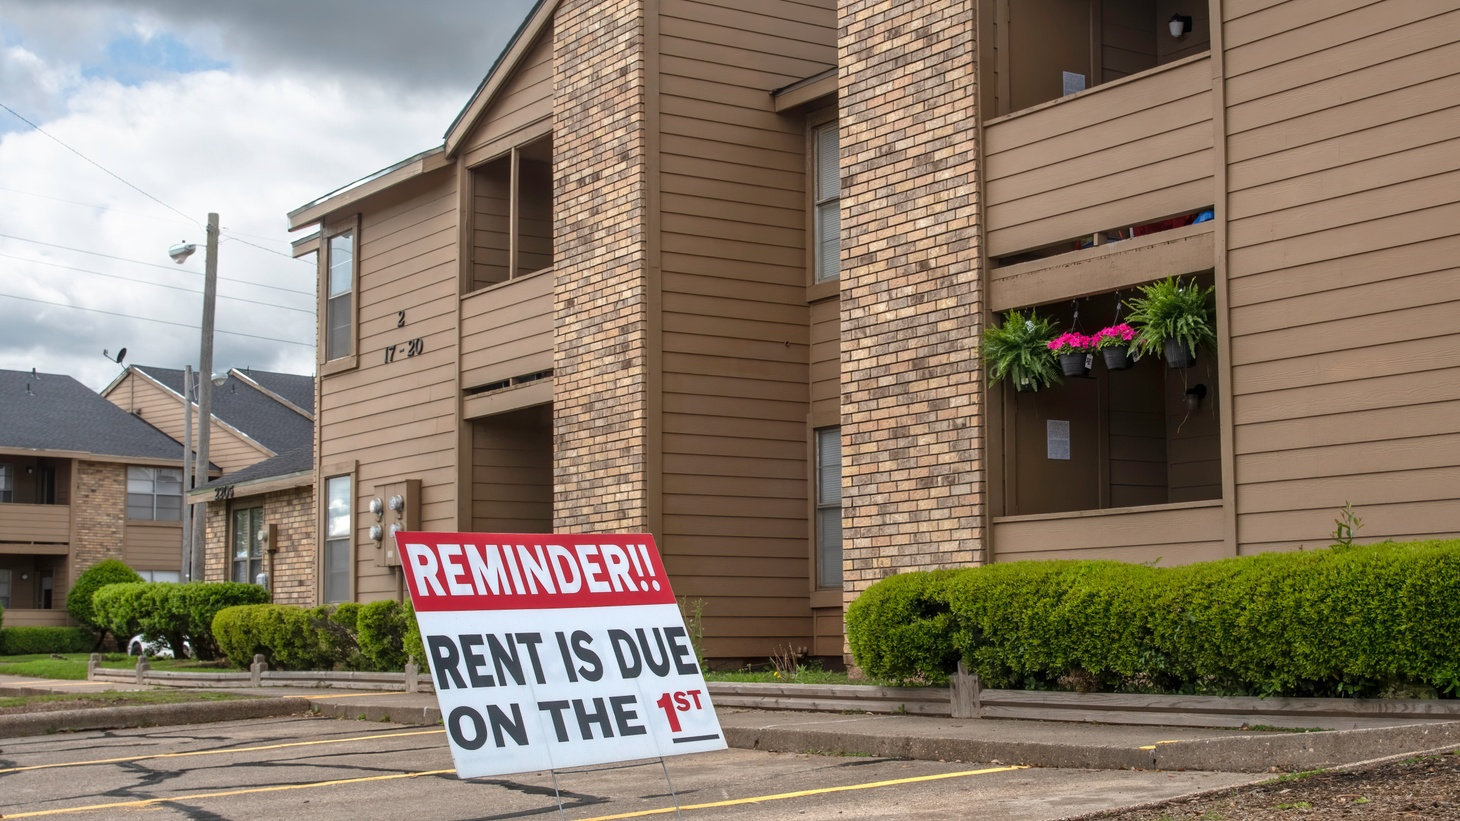 """A sign in the parking lot of an apartment complex reminds renters: """"Rent is due on the 1st."""""""